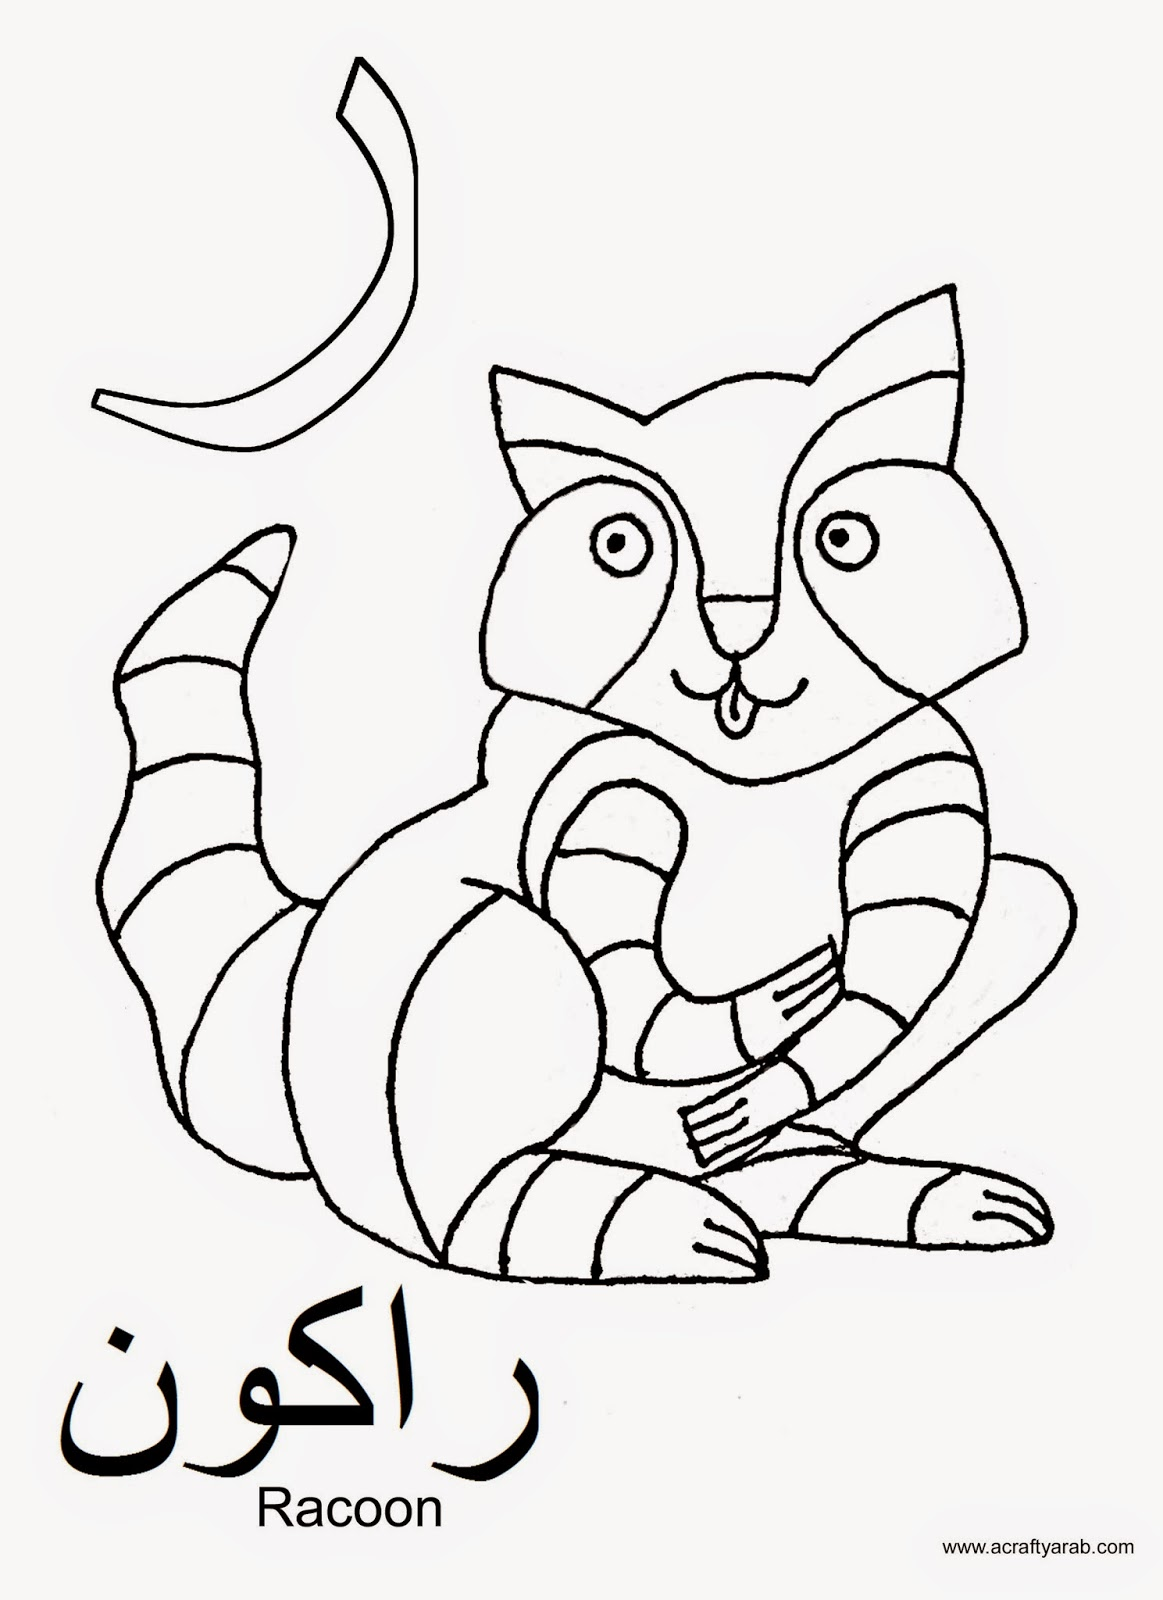 Arabic Alphabet Coloring Pages Ra Is For Racoon